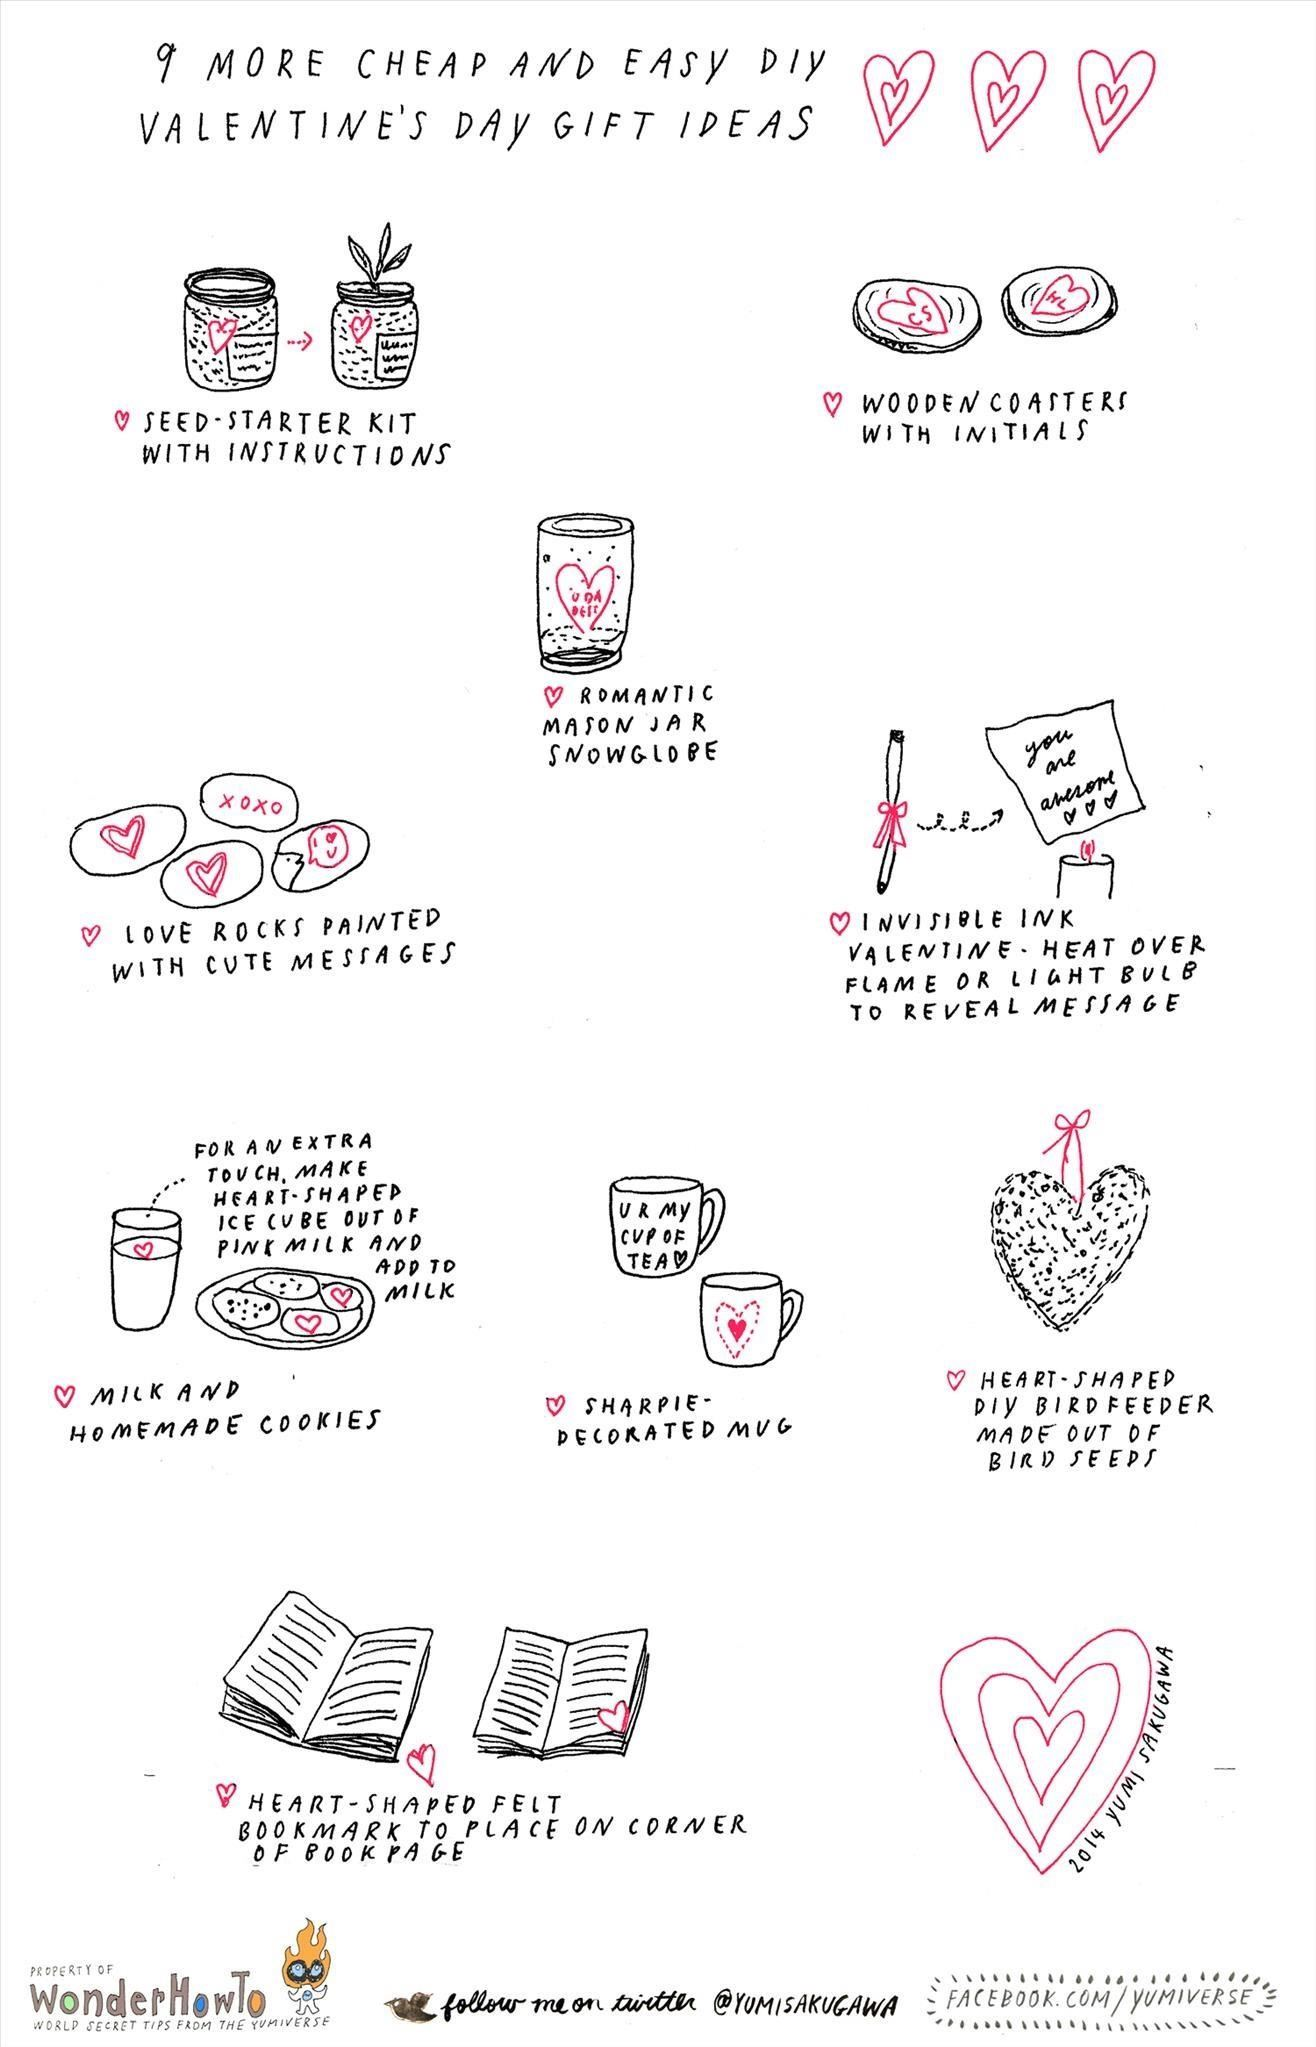 9 More Cheap & Easy DIY Gift Ideas for Valentine's Day